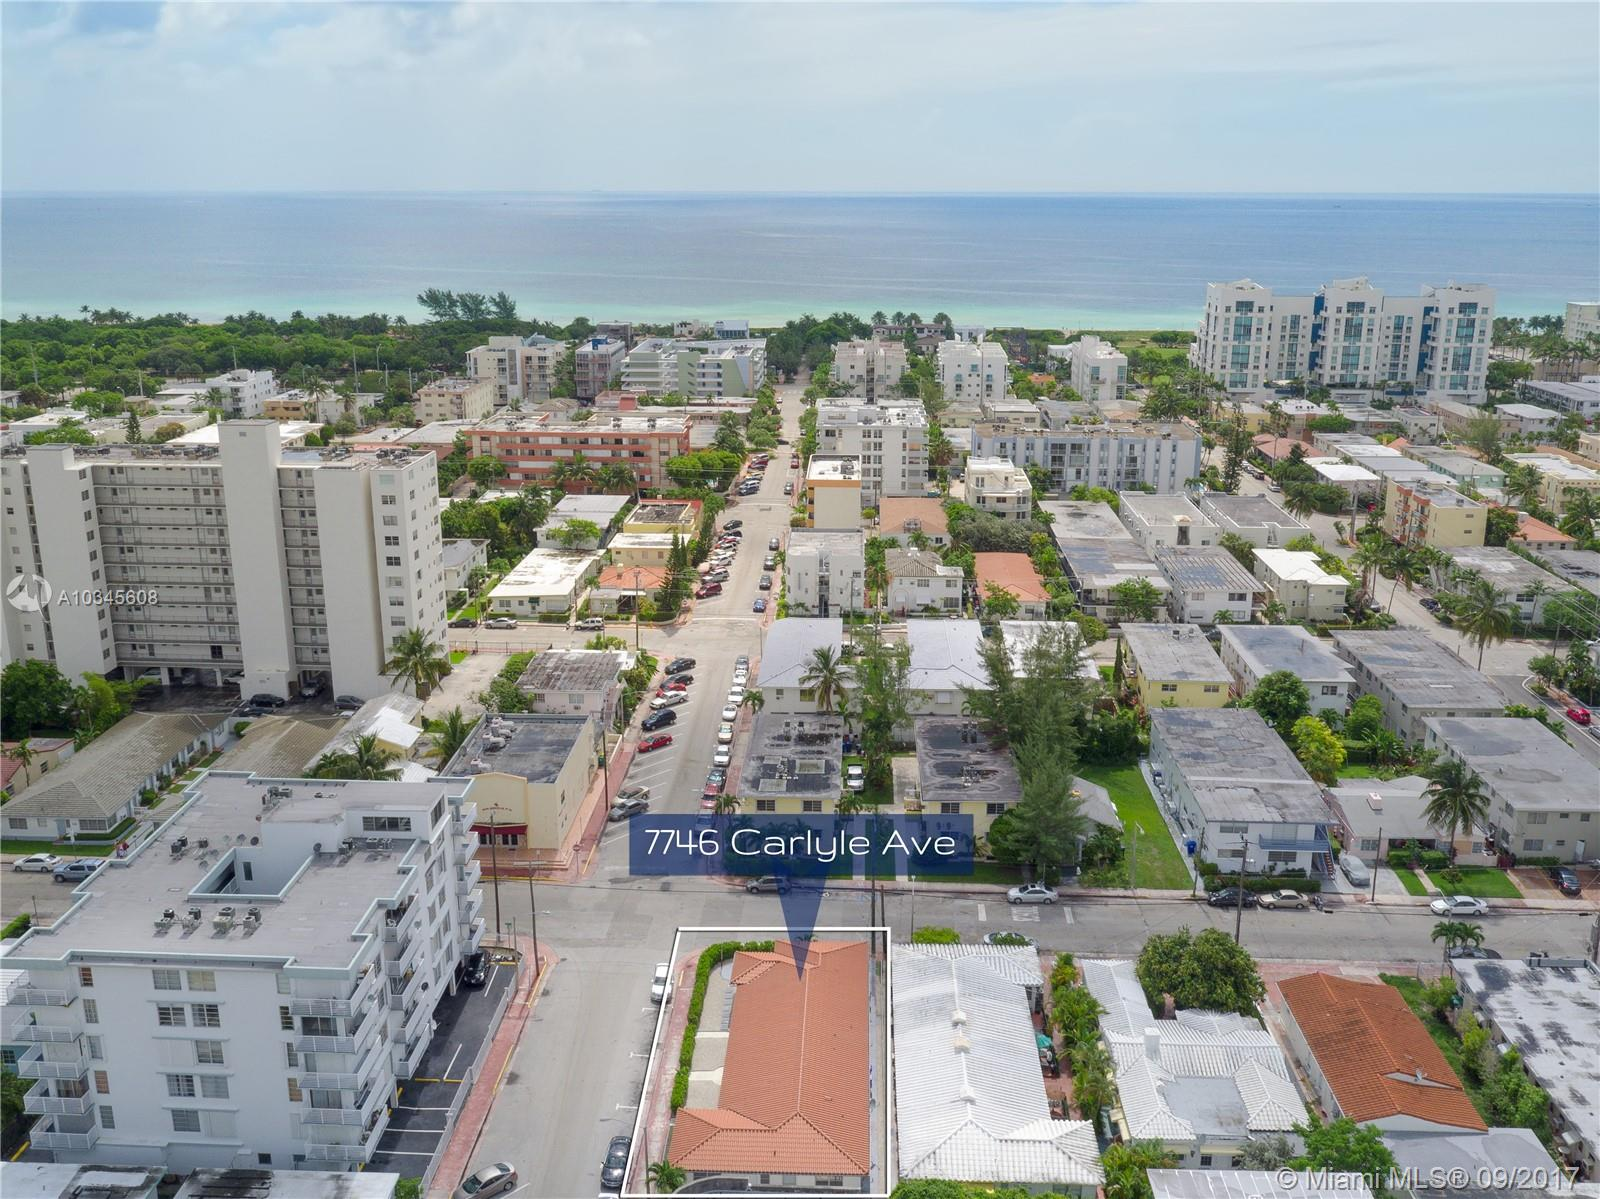 7746 Carlyle Ave, Miami Beach, Florida 33141, ,Commercial Sale,For Sale,7746 Carlyle Ave,A10345608